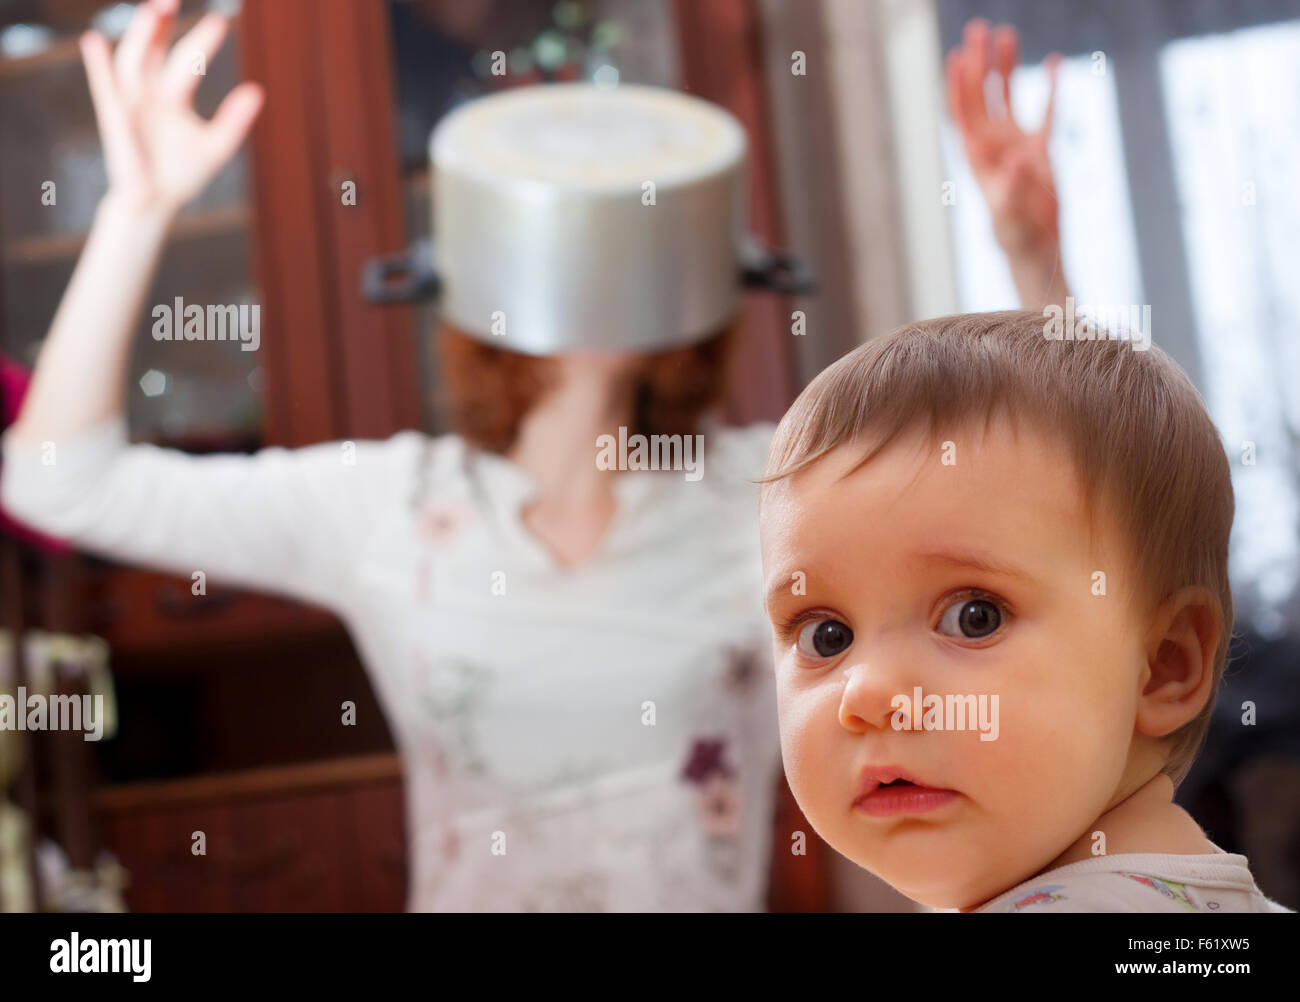 Portrait of scared baby against crazy mother with pan on head - Stock Image